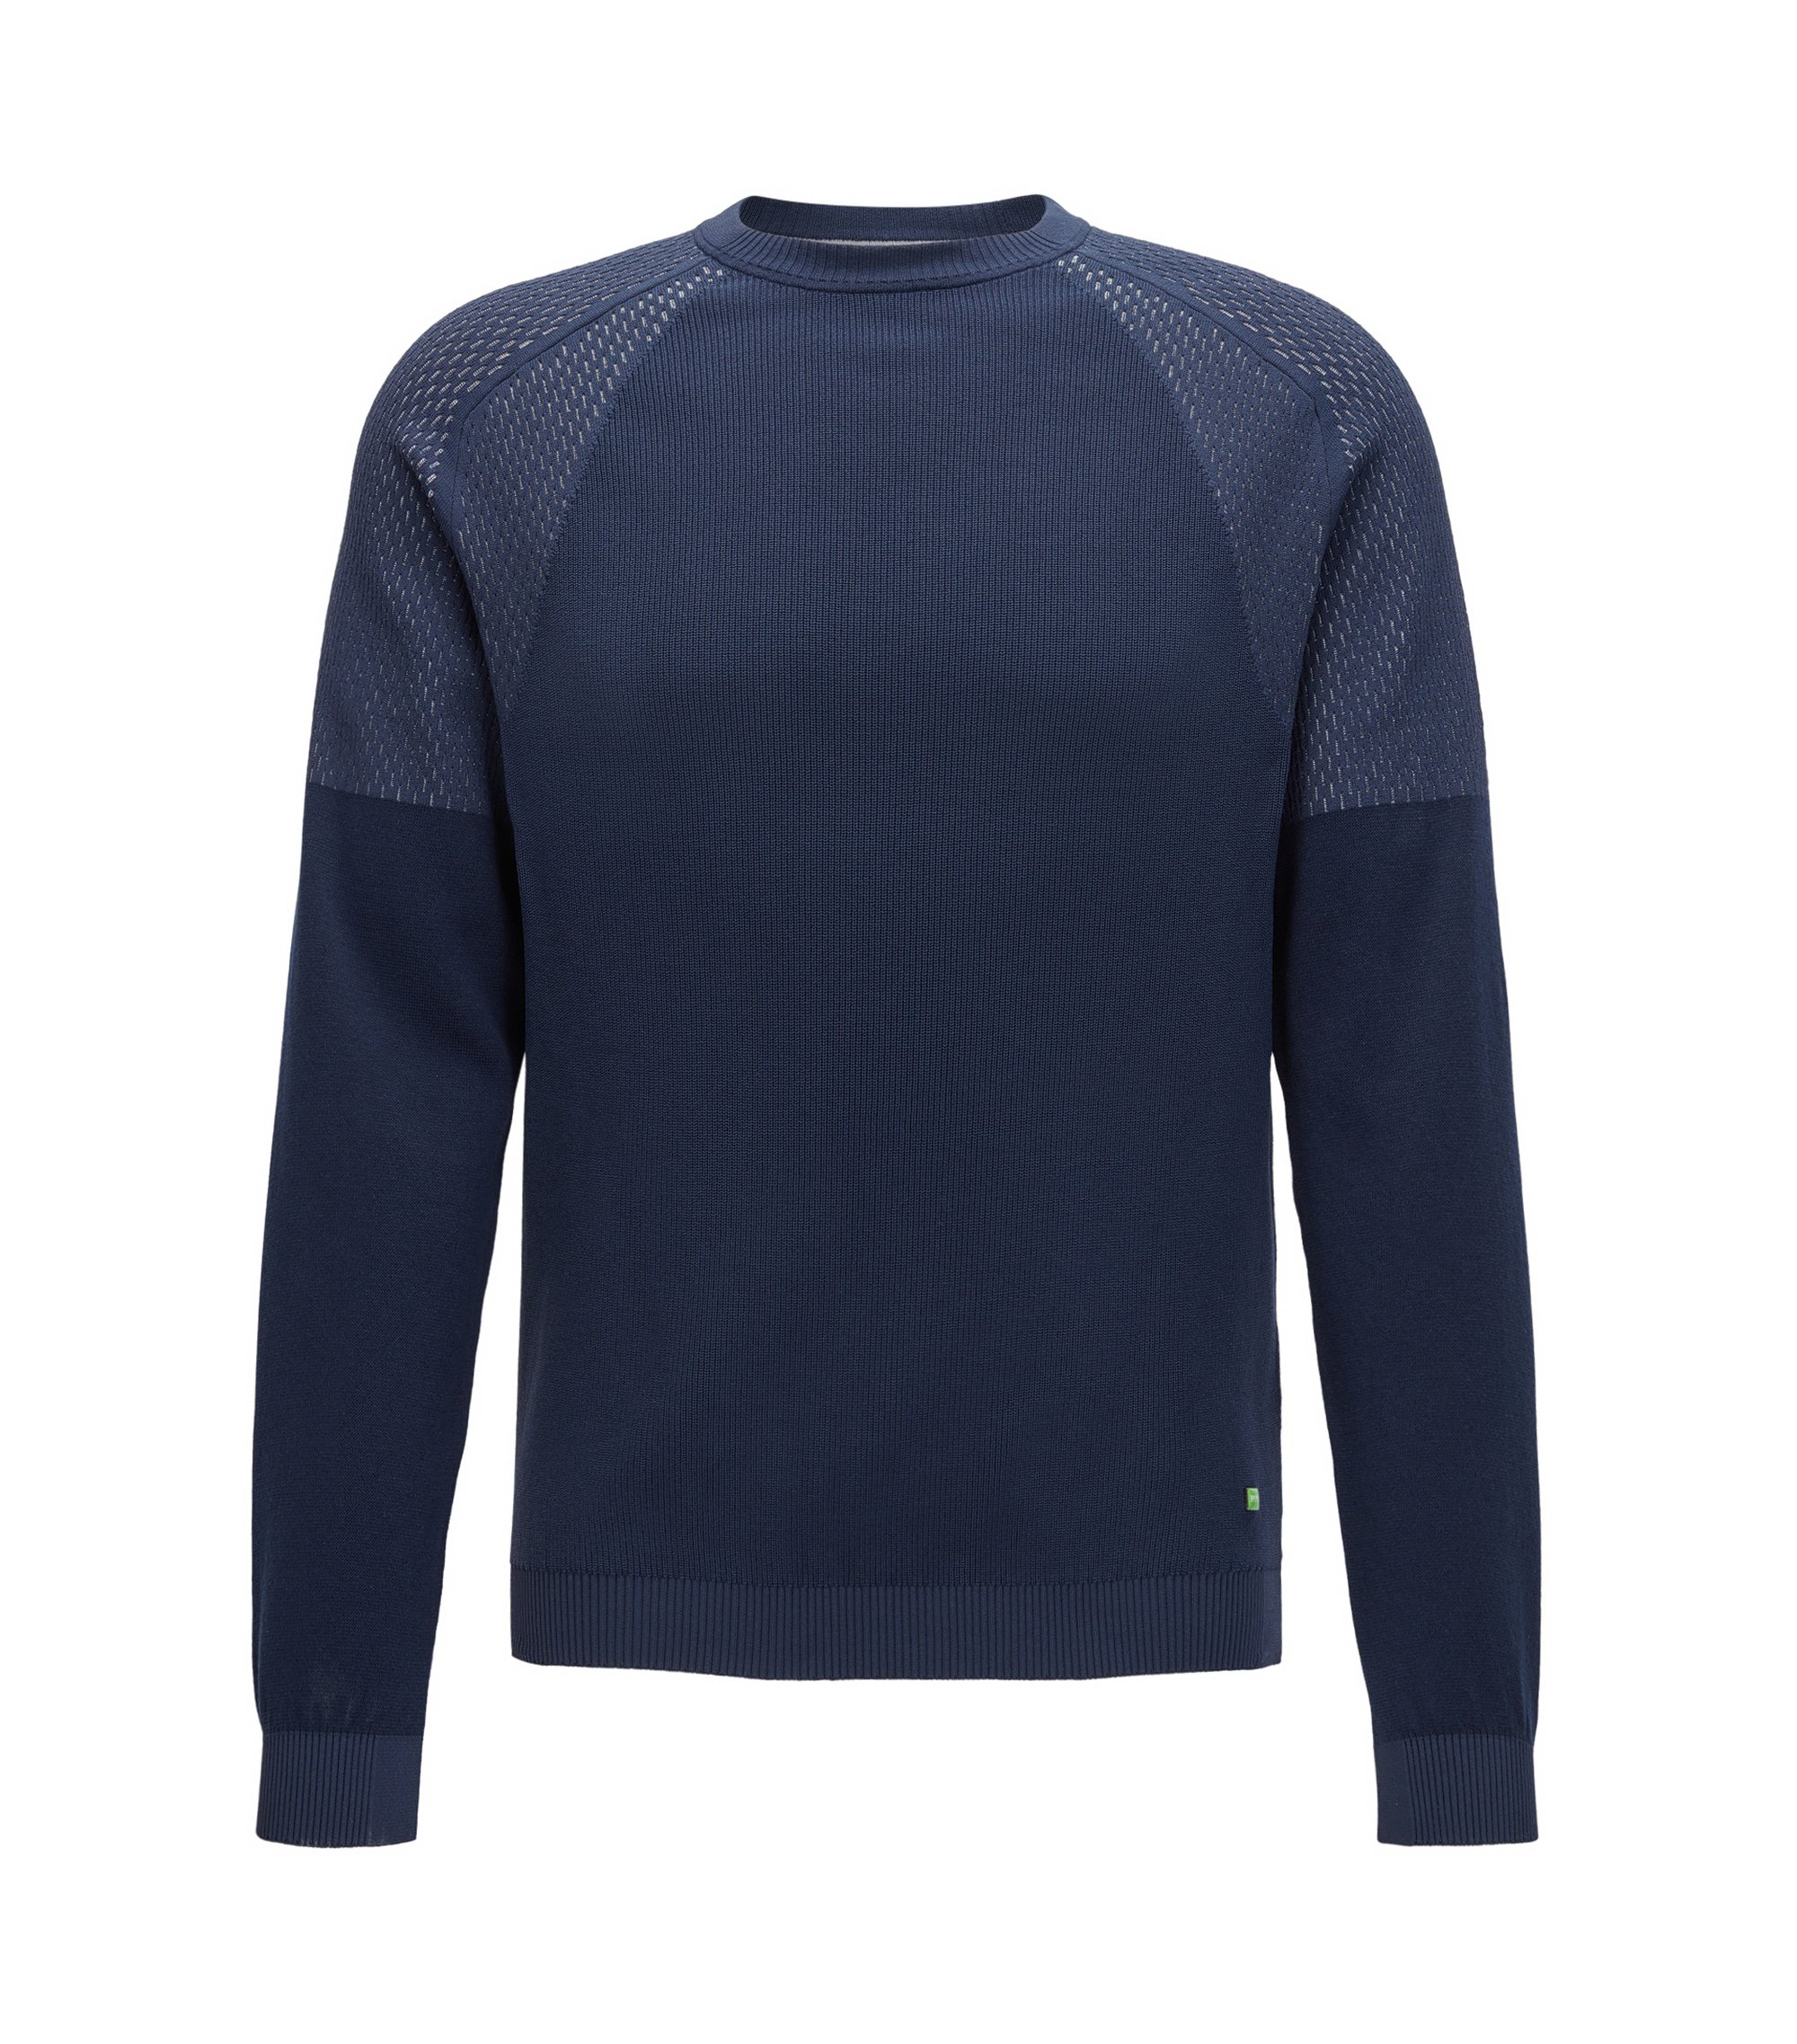 Crew-neck sweater in mixed structures, Dark Blue